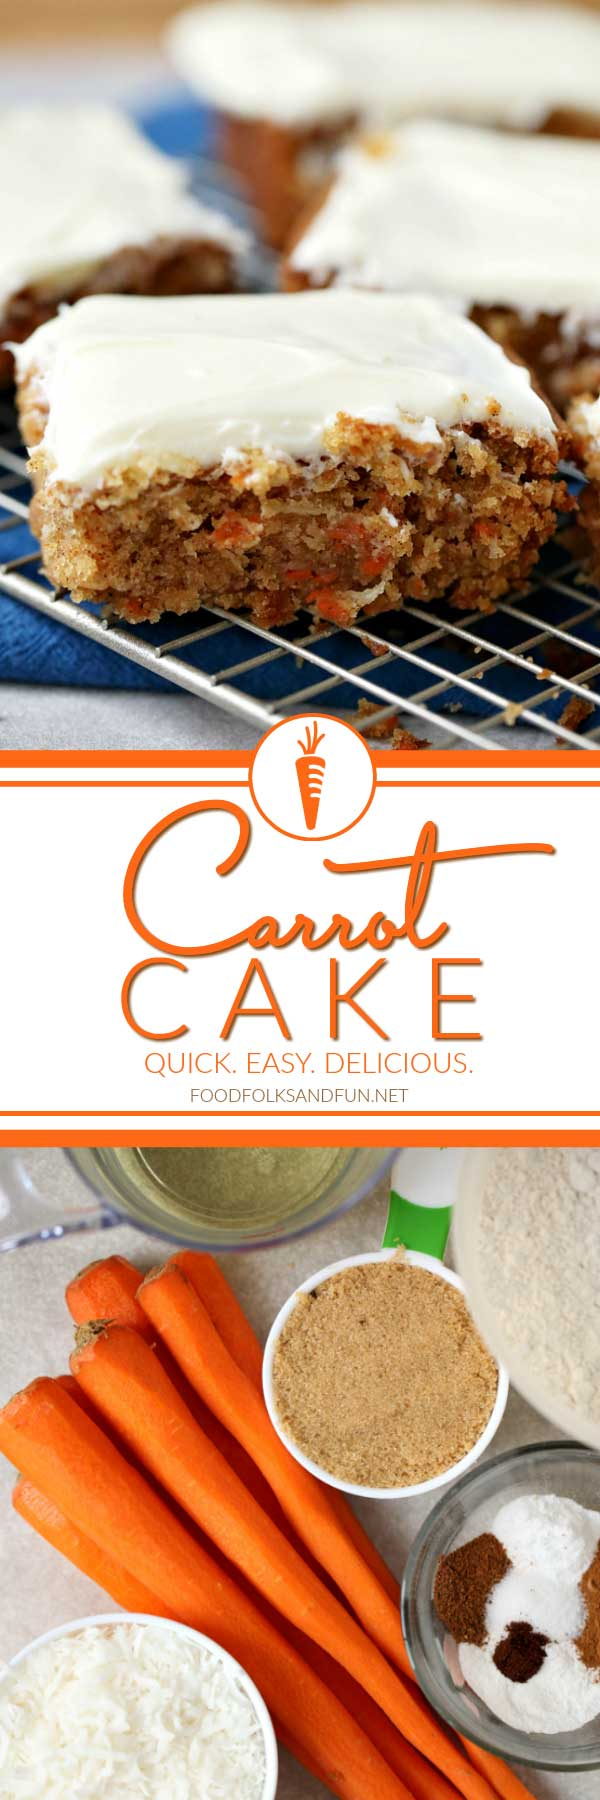 A collage of carrot cake pieces and ingredients needed to make the cake with text overlay for Pinterest